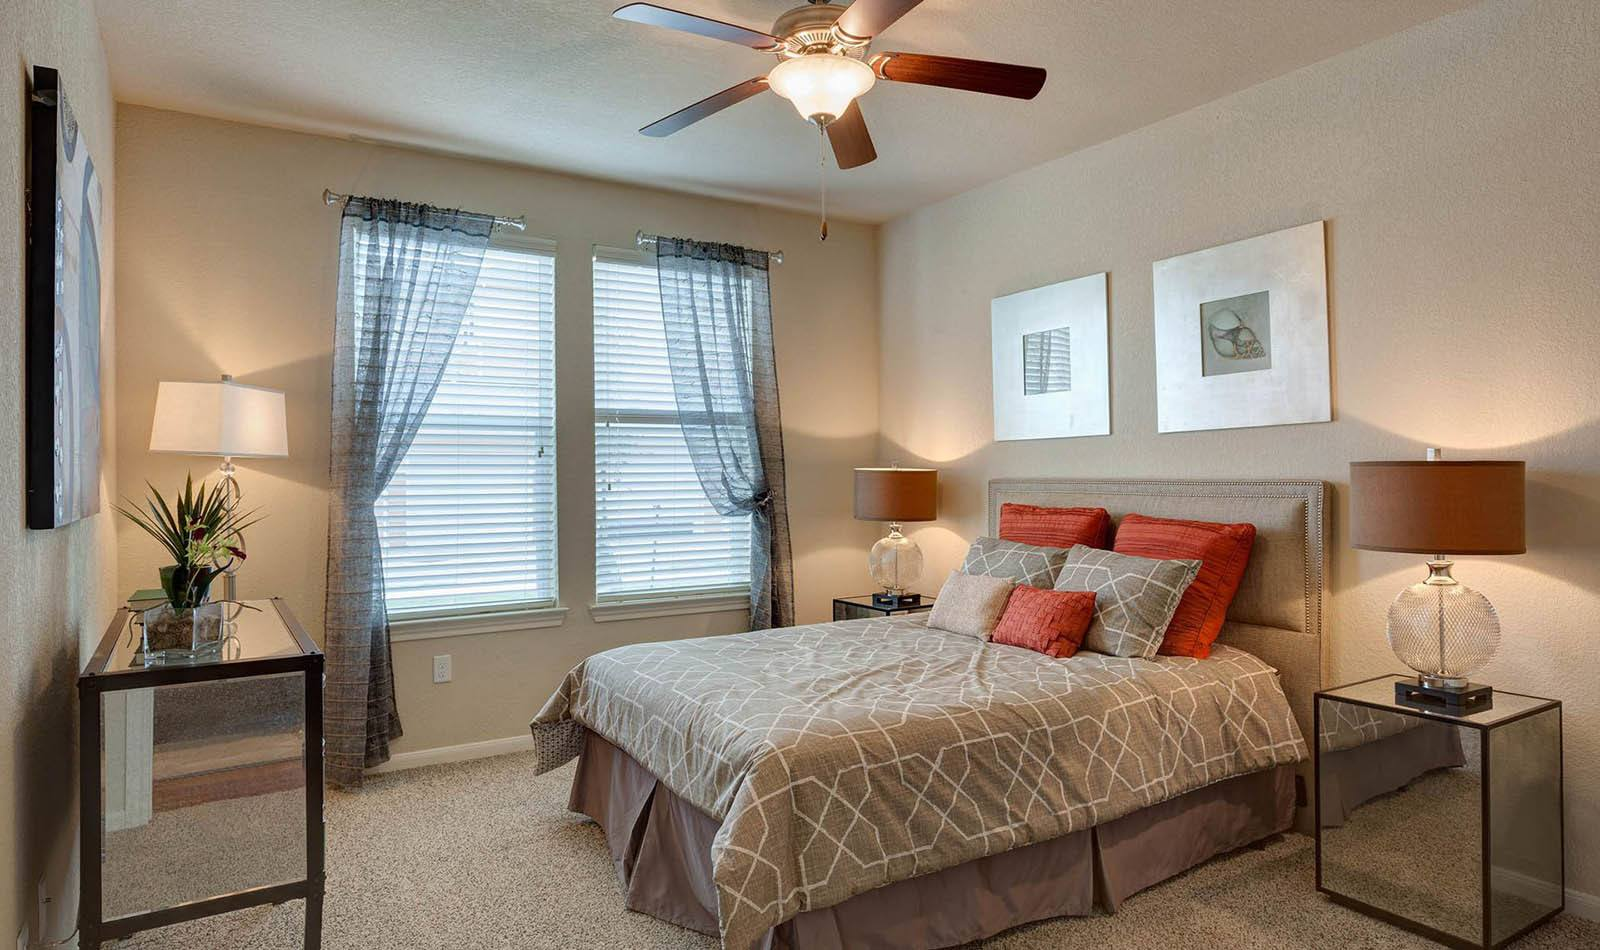 Bedroom at apartments in San Marcos, TX